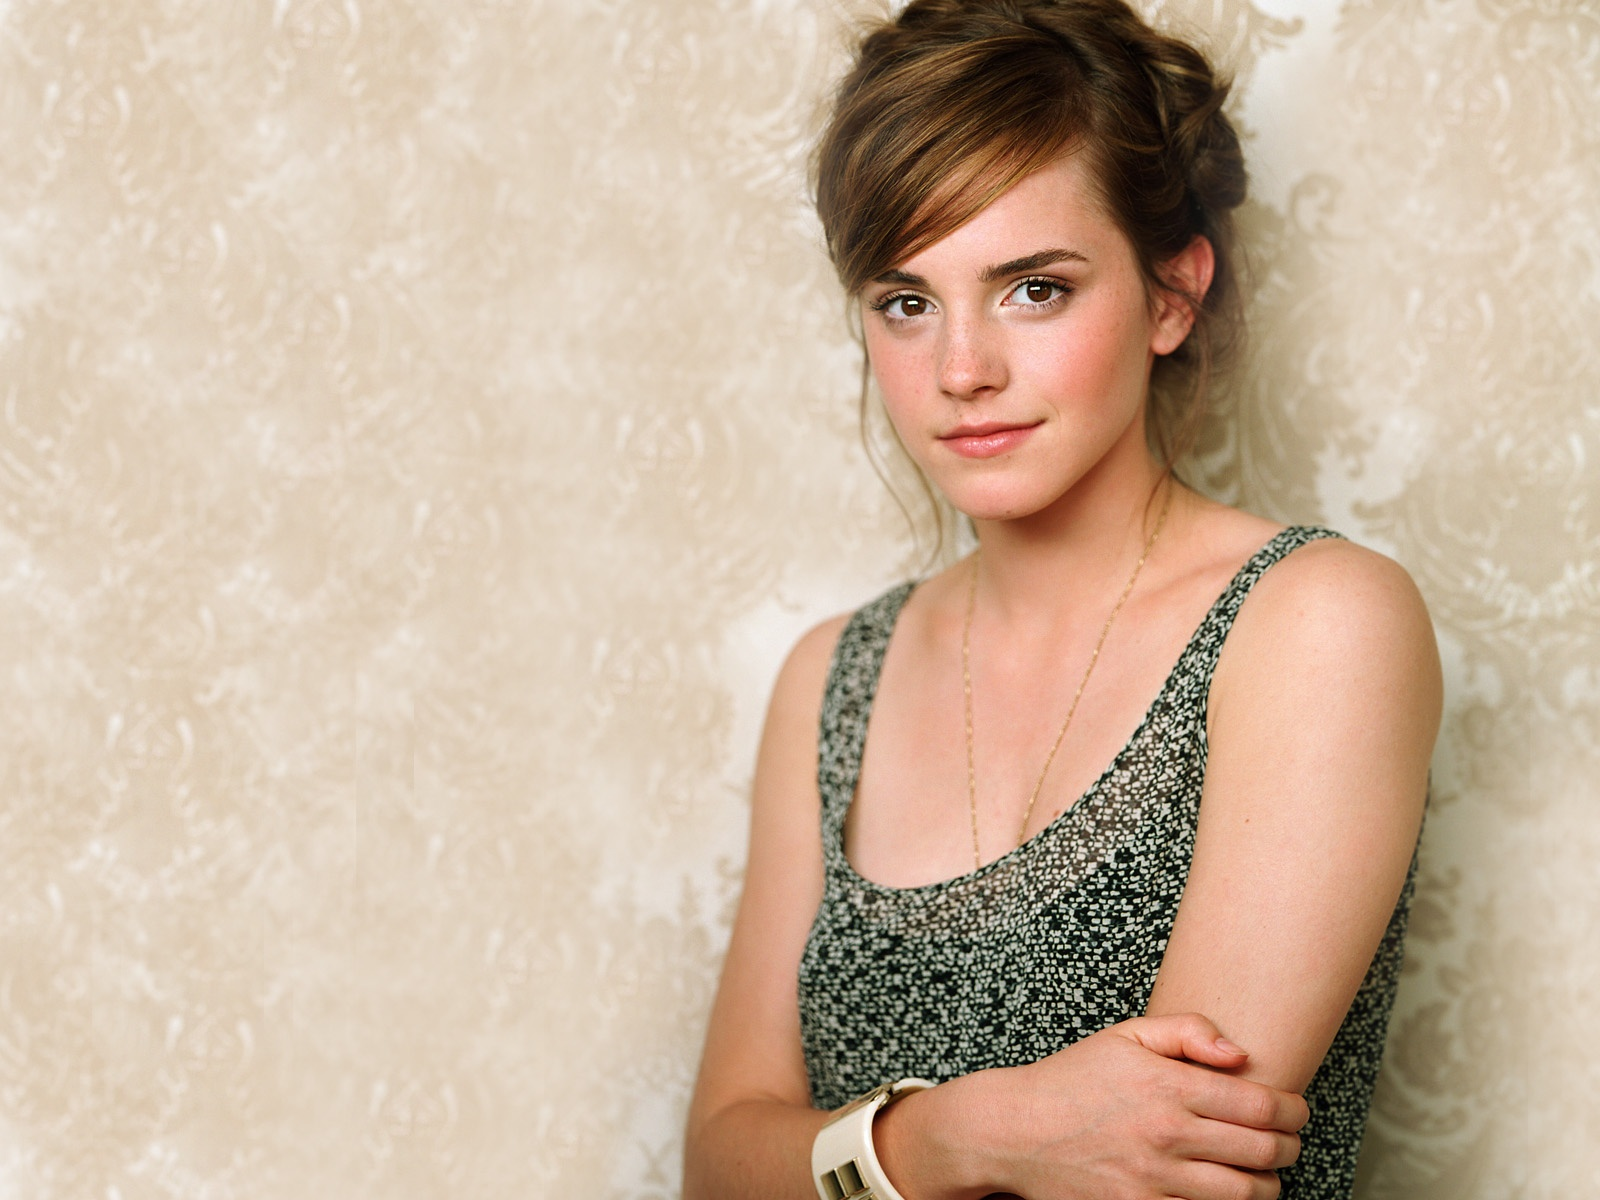 Emma Watson Latest High Quality Wallpapers in jpg format for free